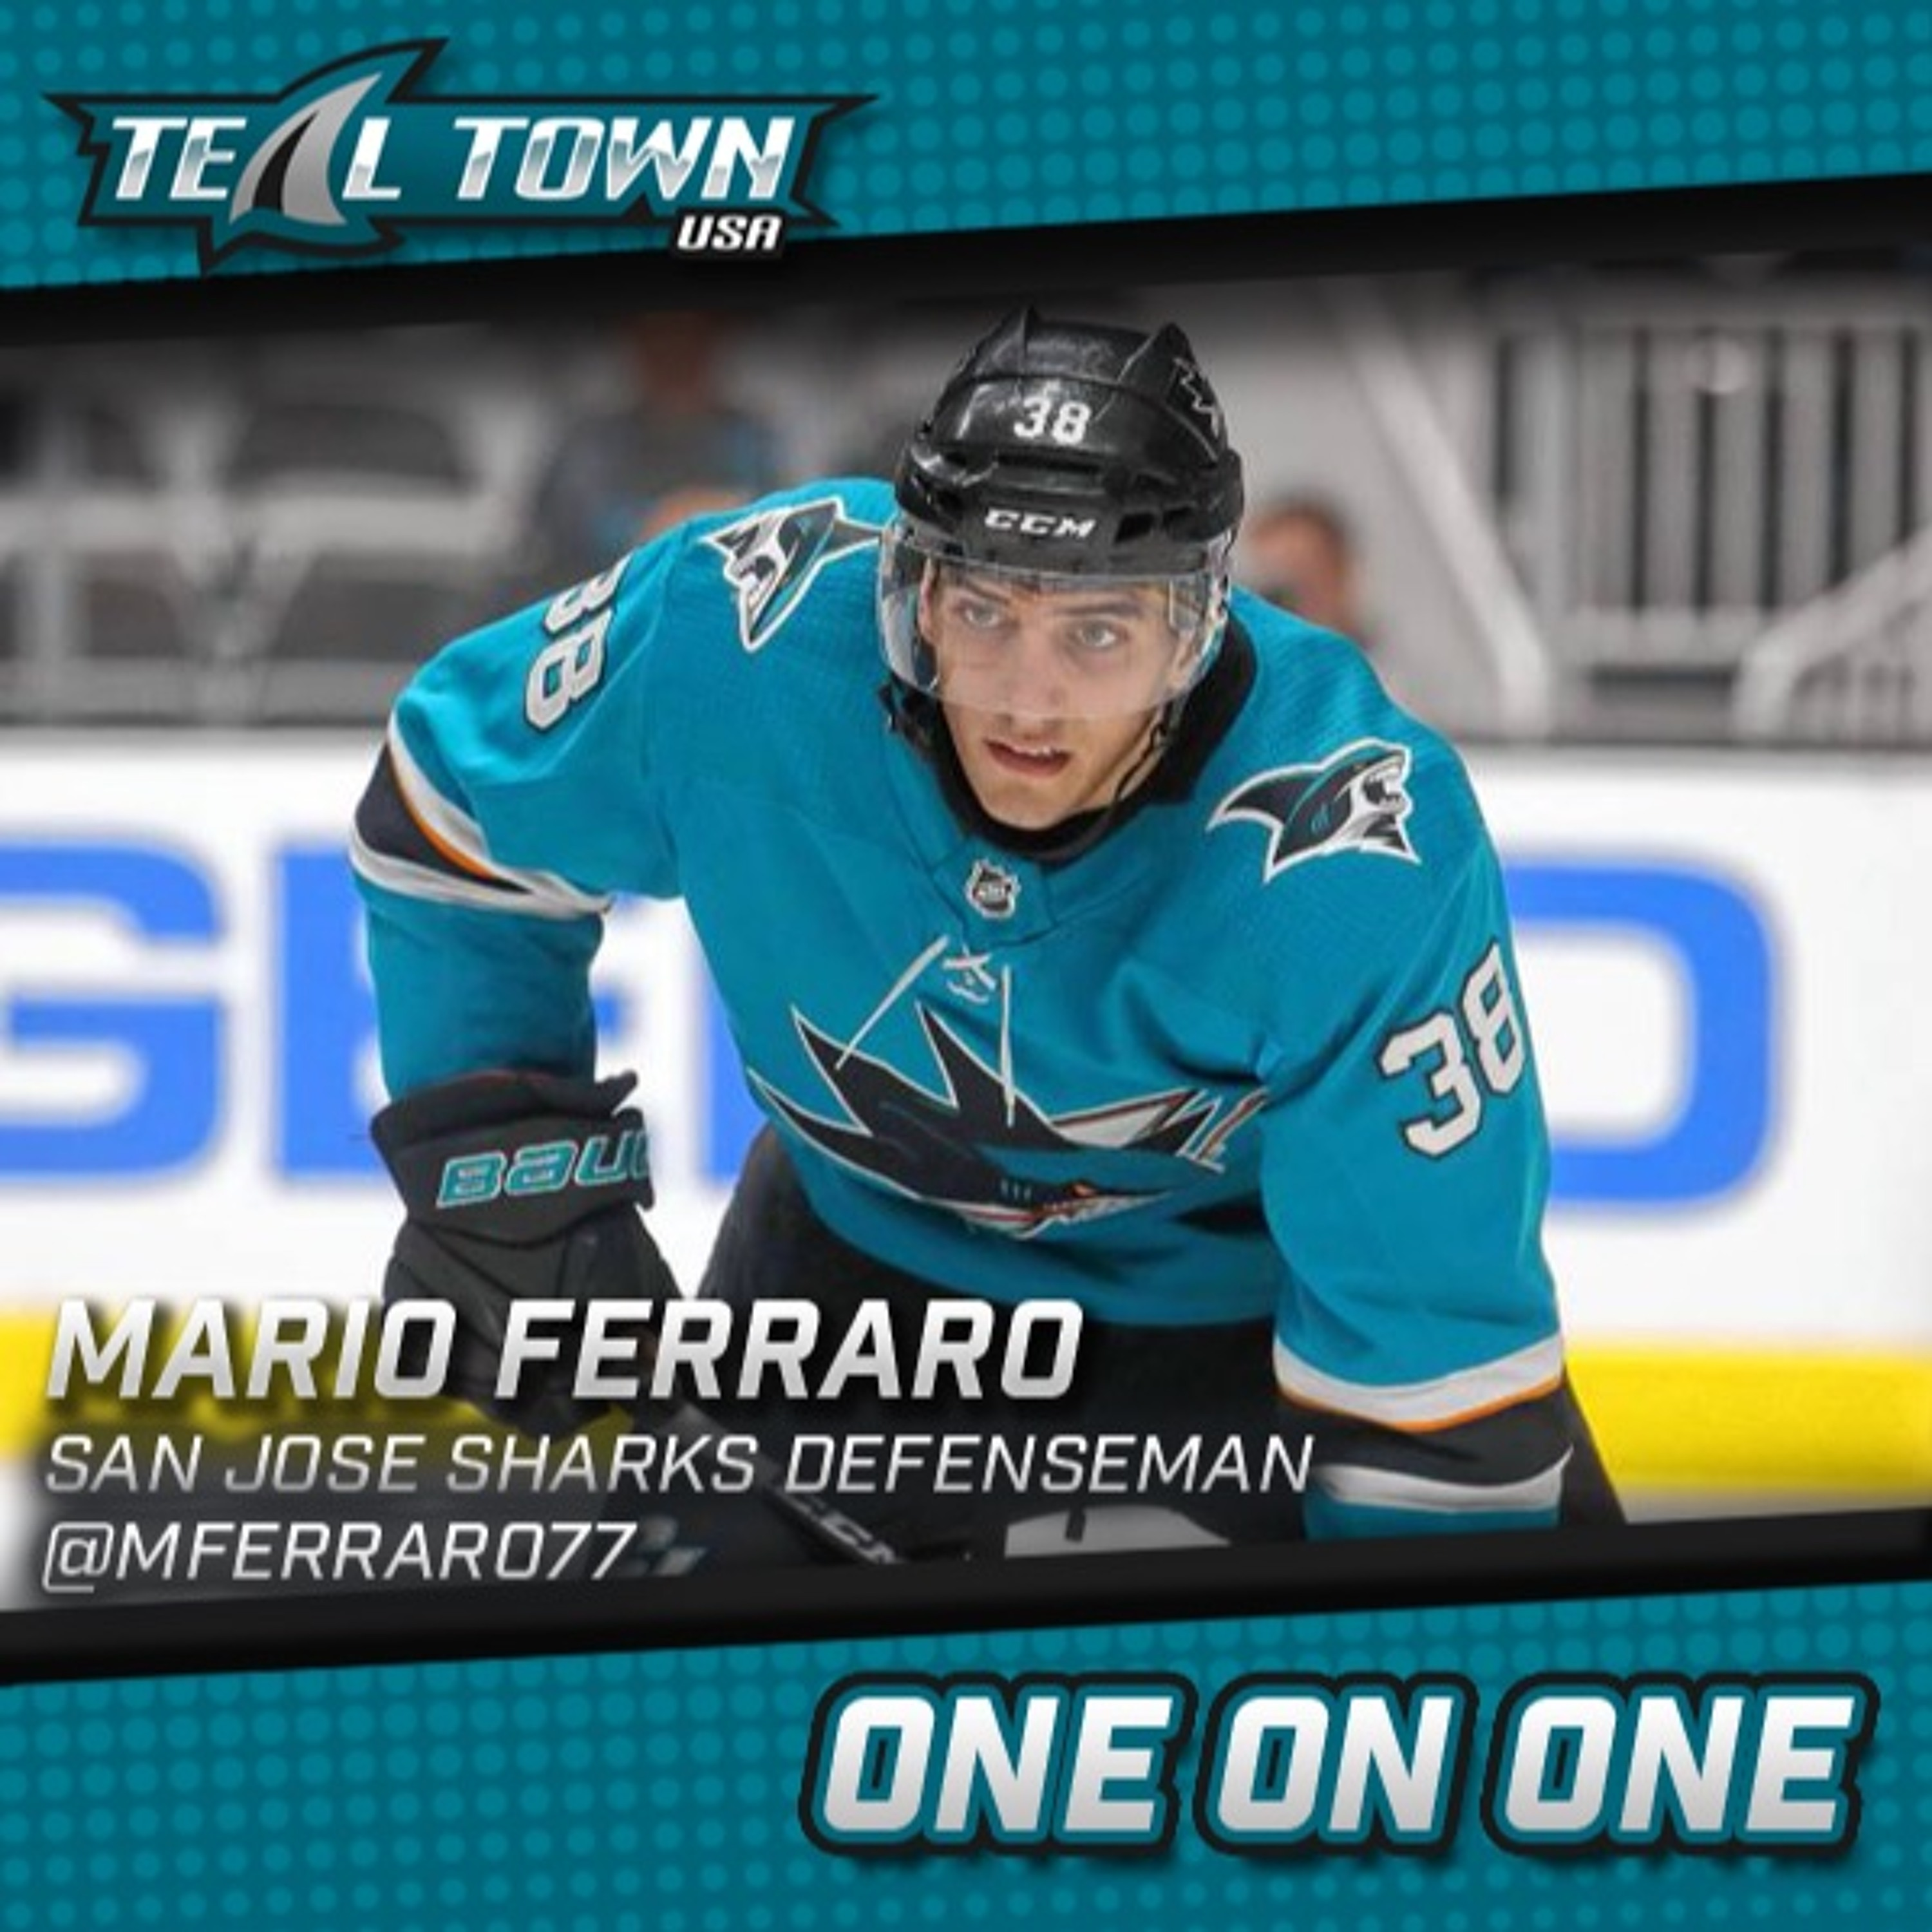 One on One with Mario Ferraro - San Jose Sharks - 4-27-20